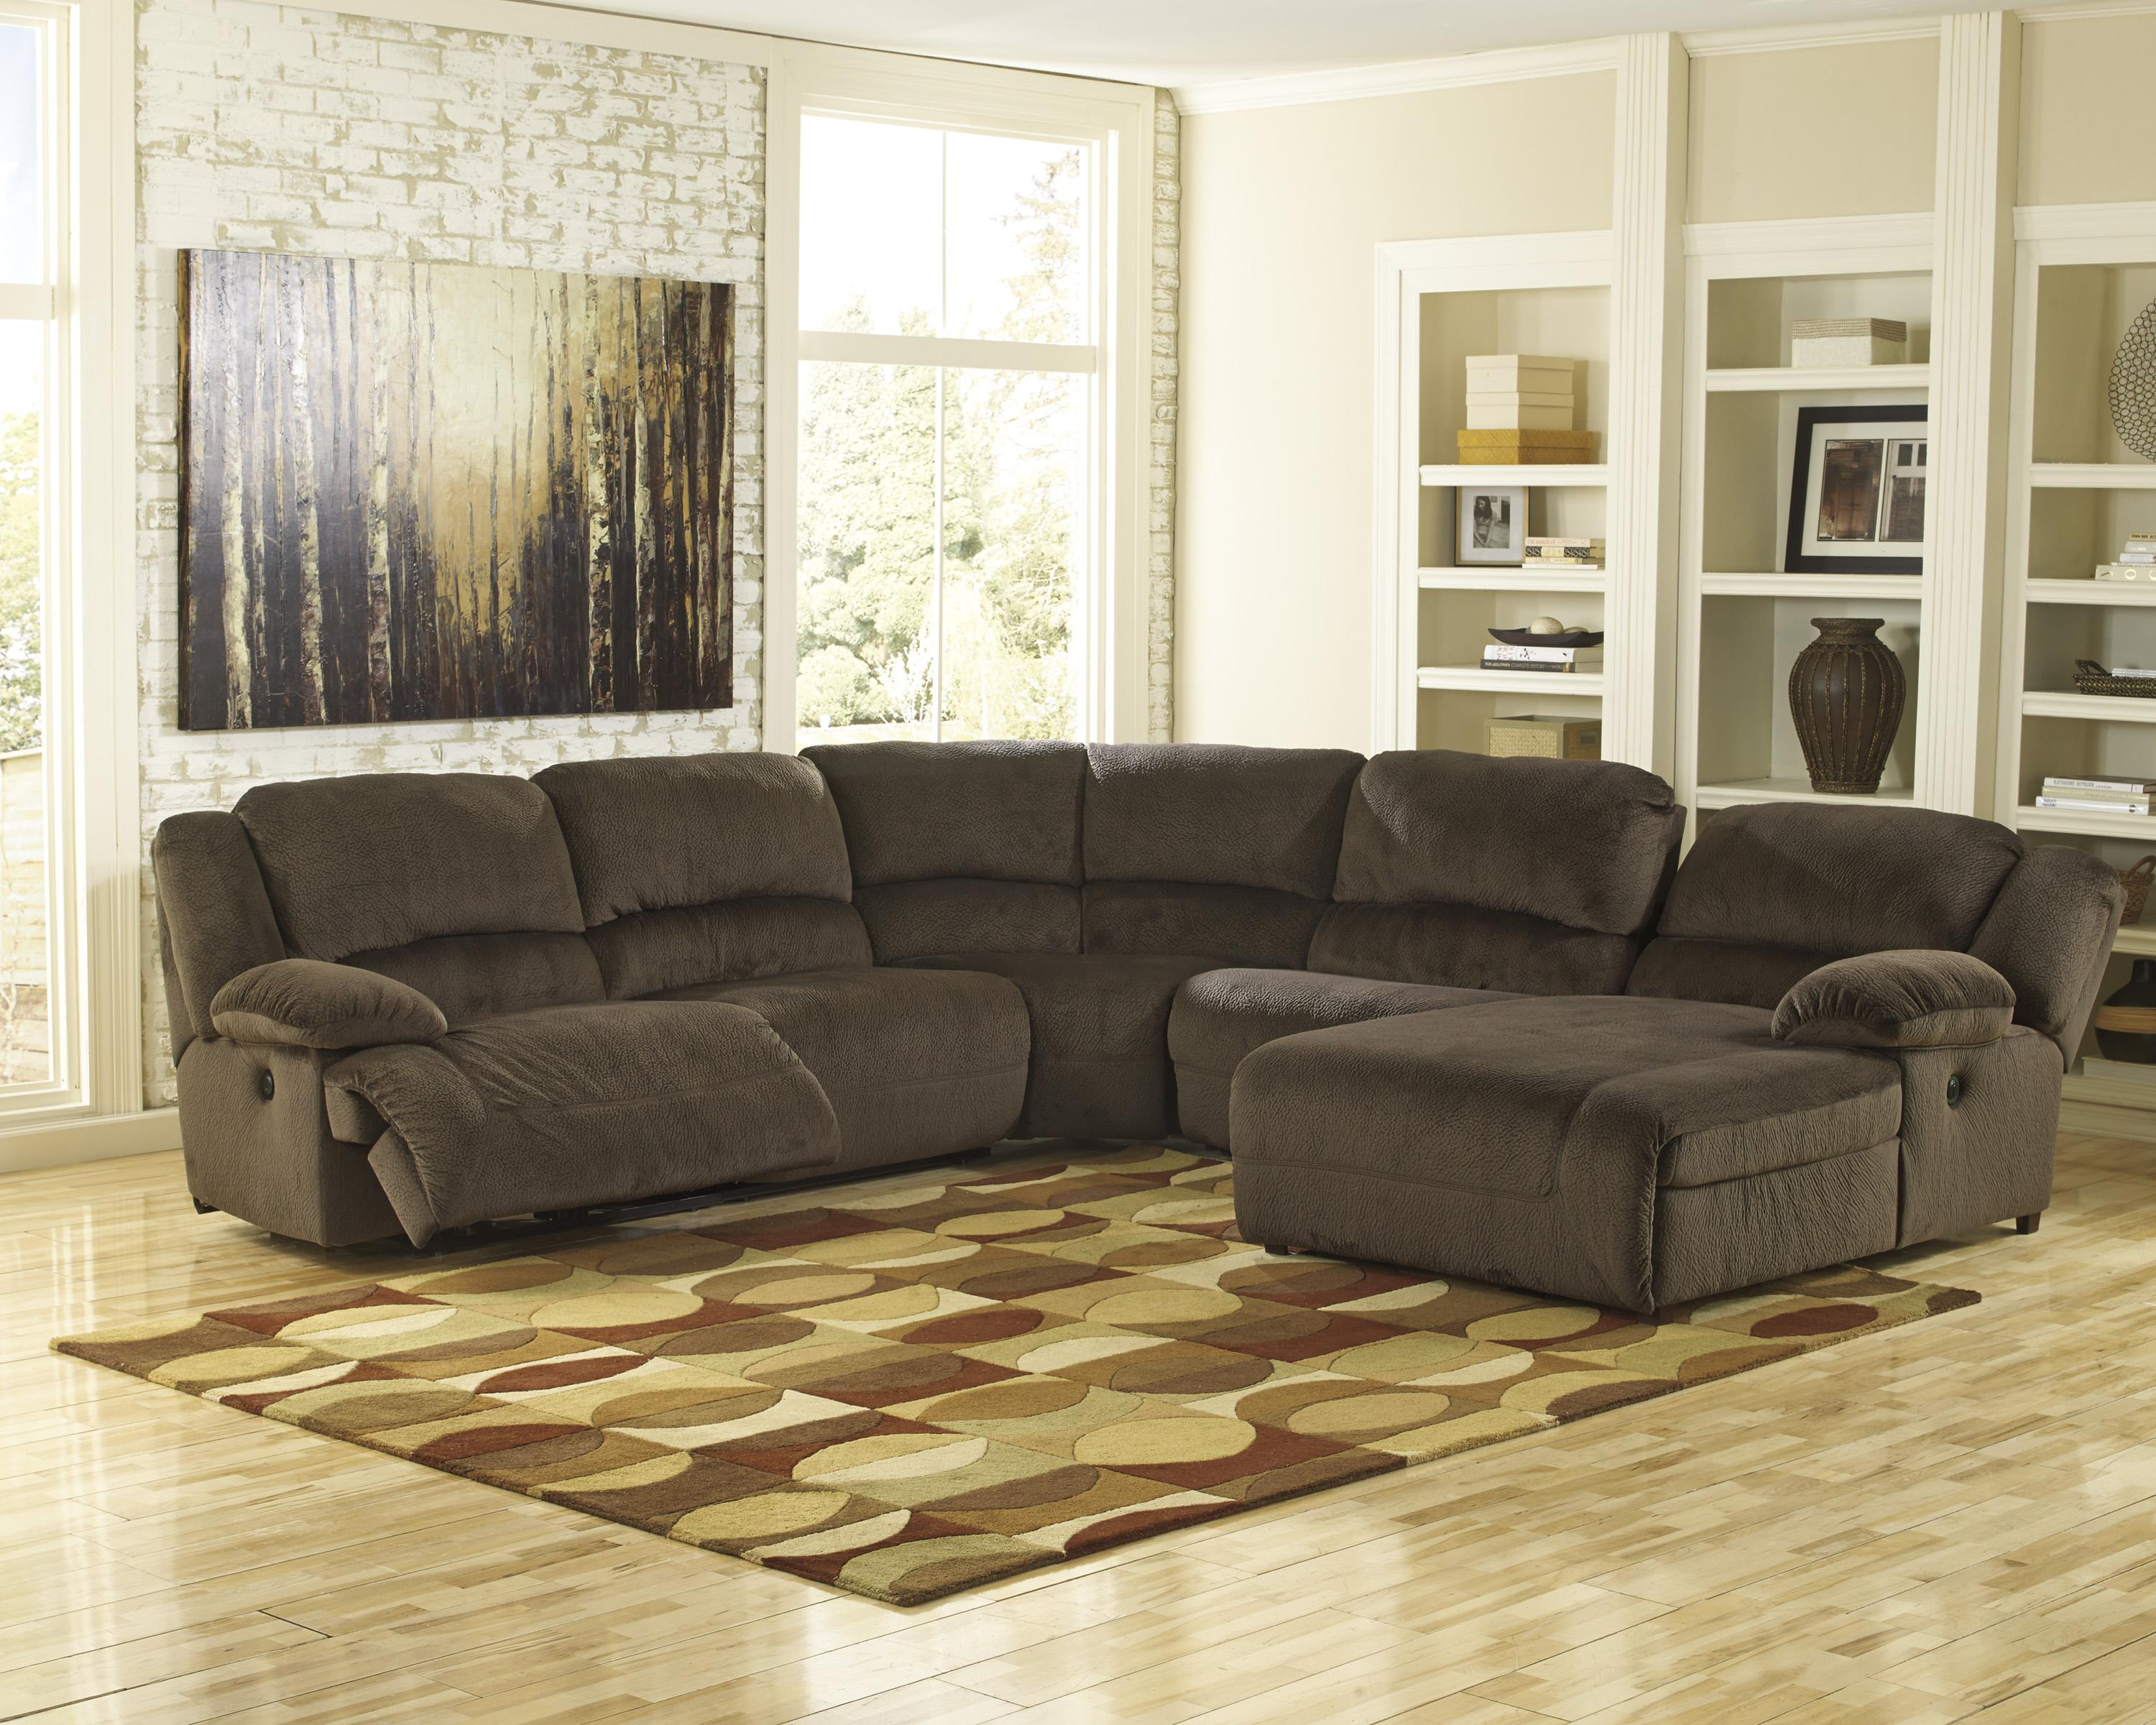 Power reclining sectional with right press back chaise by for Sectional sofa with bed and recliner